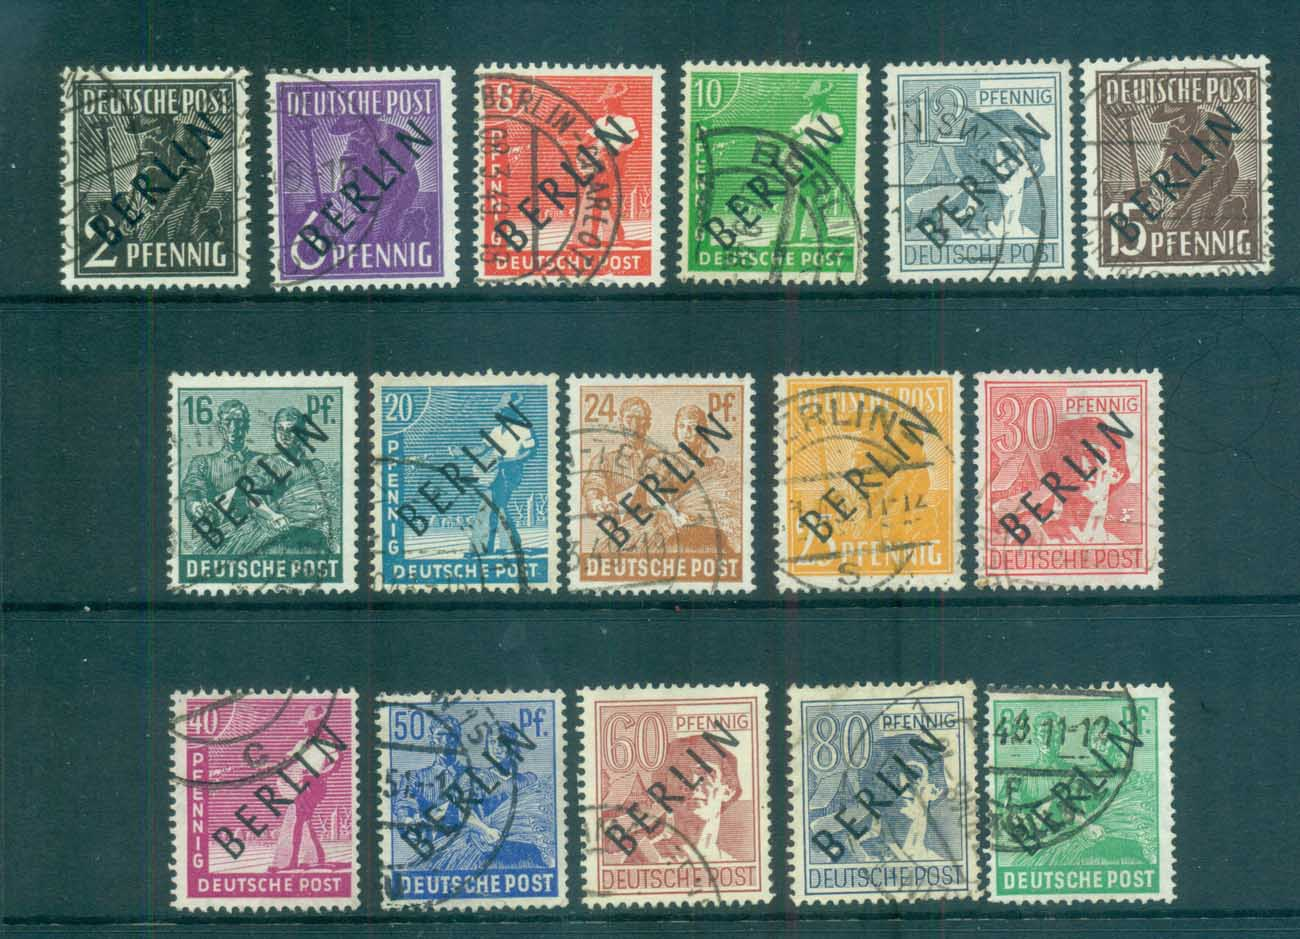 Germany Berlin 1948 Black BERLIN Opts to 84pf FU lot70350